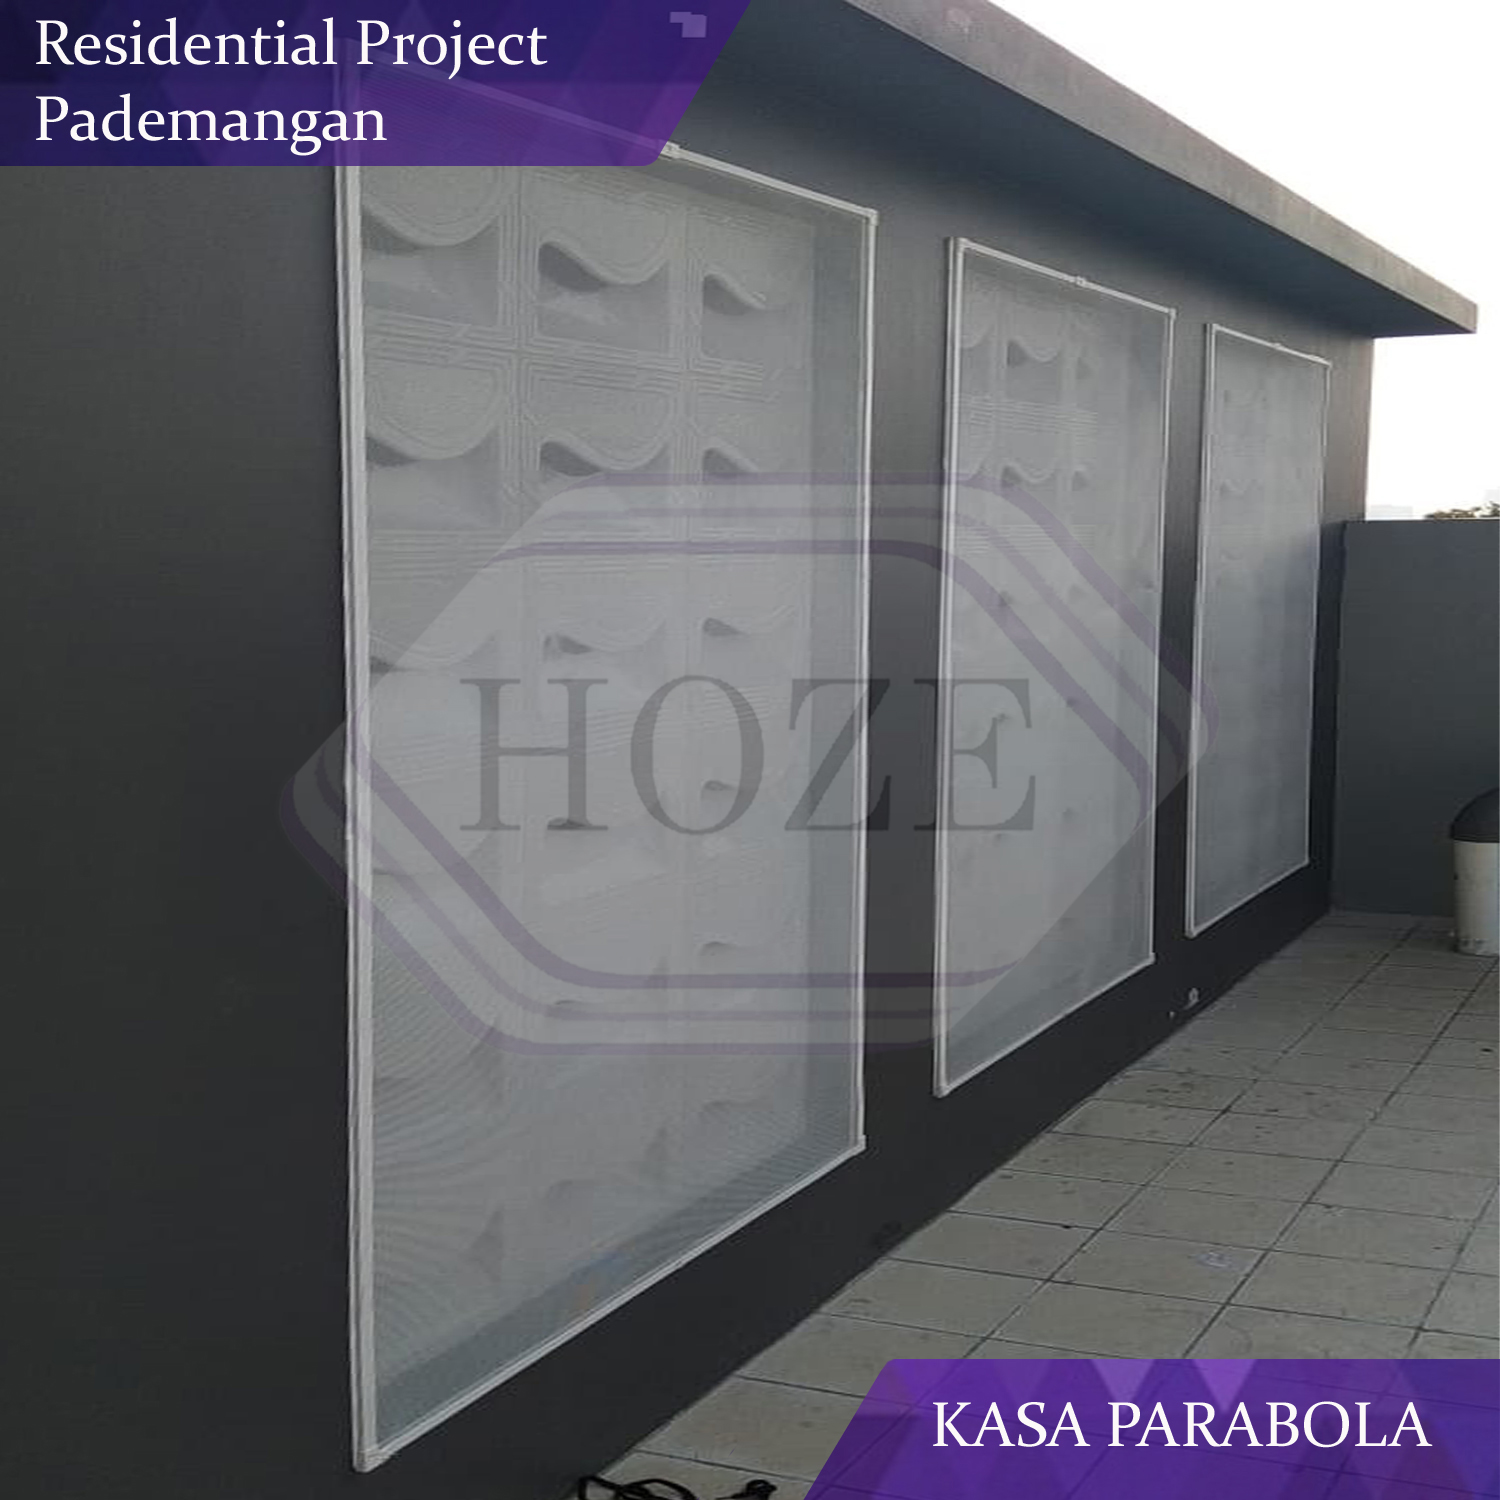 MIS Residential Project